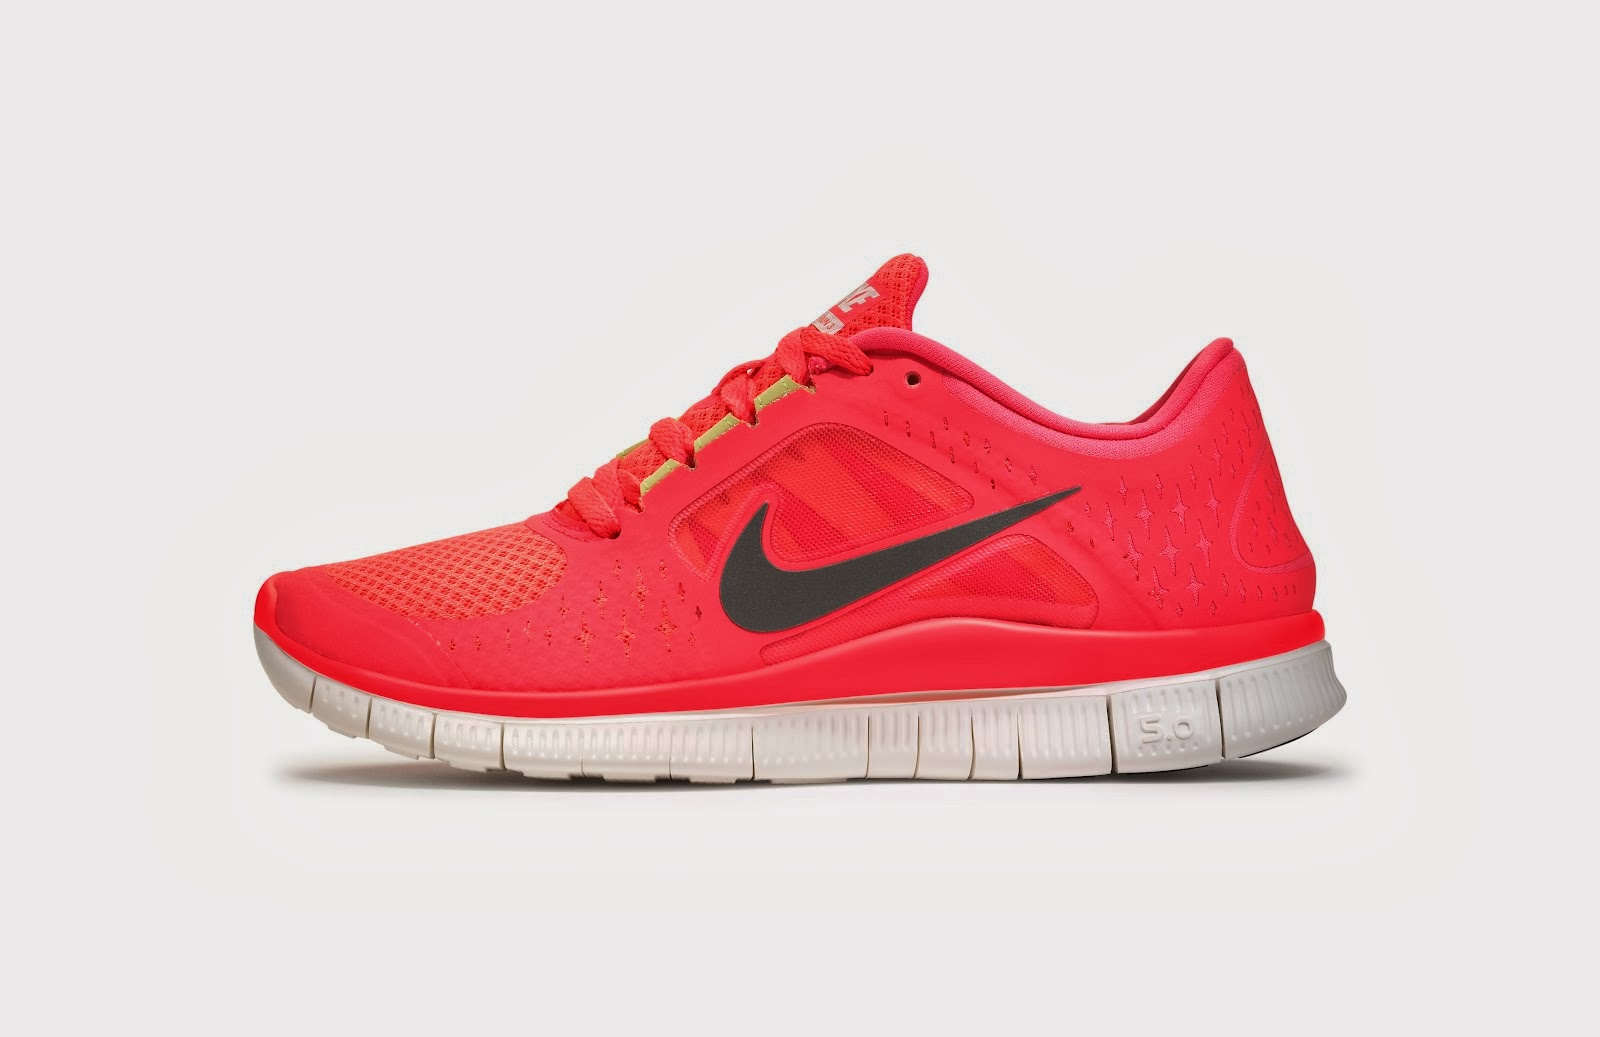 3508274ec2e ... australia click image to zoom view larger image to download nike free  run 3 hd wallpaper